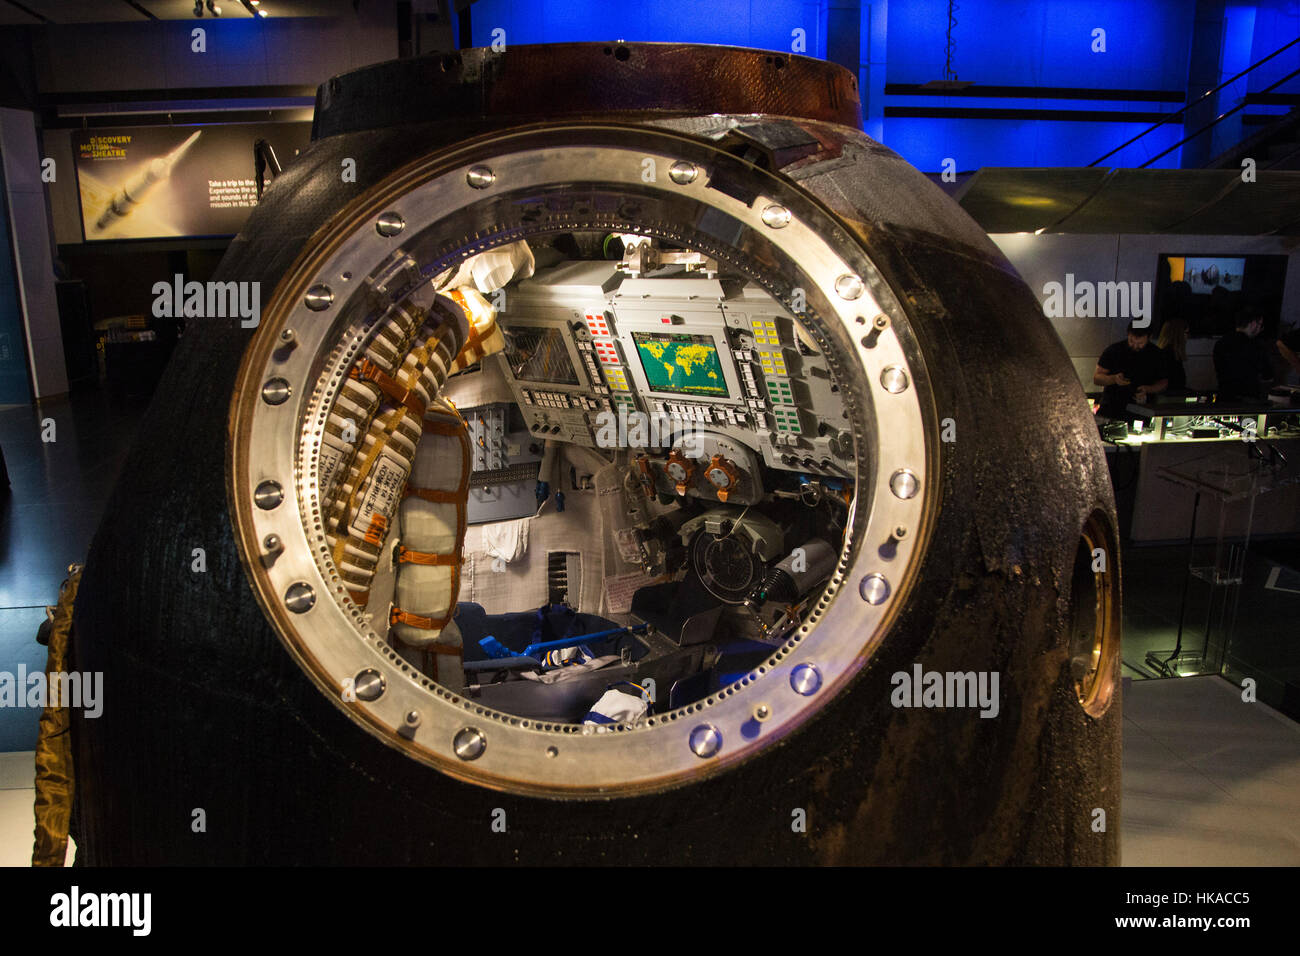 London, UK. 26 January 2017. View inside the spacecraft. The Science Museum unveils the Soyuz TMA-19M descent module, Stock Photo